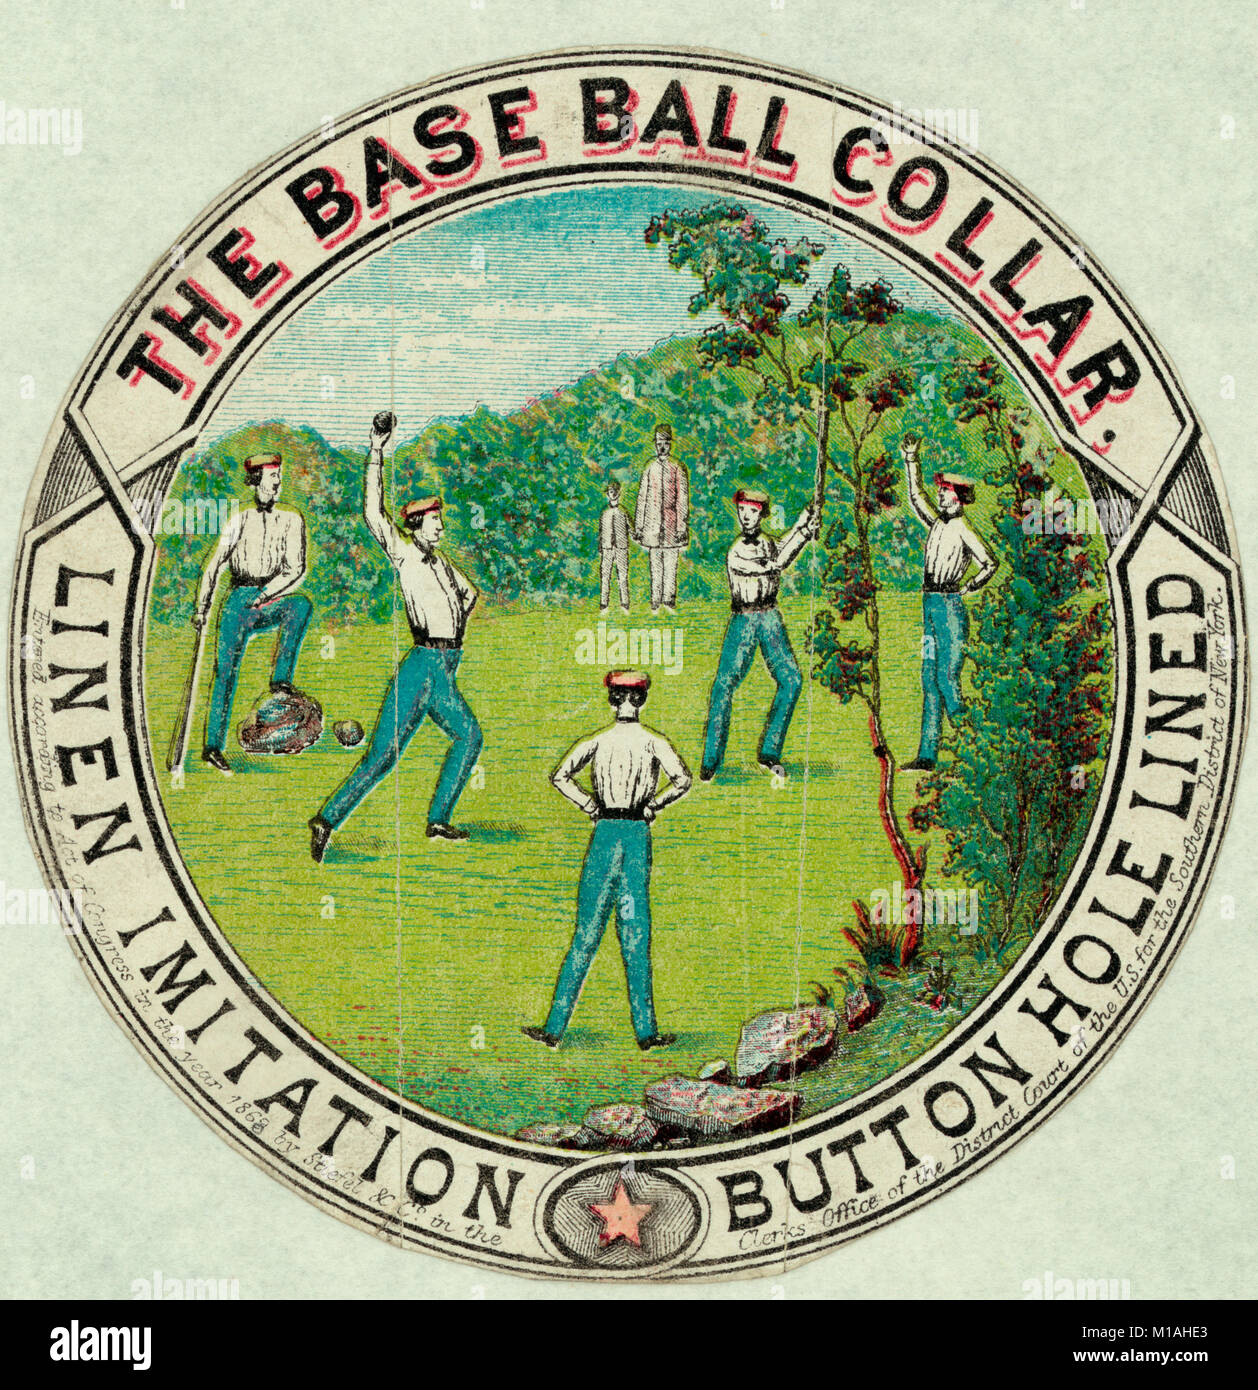 Le collier de base ball - Hommes portant des uniformes avec colliers, au cours d'un match de baseball. Publicité, Photo Stock